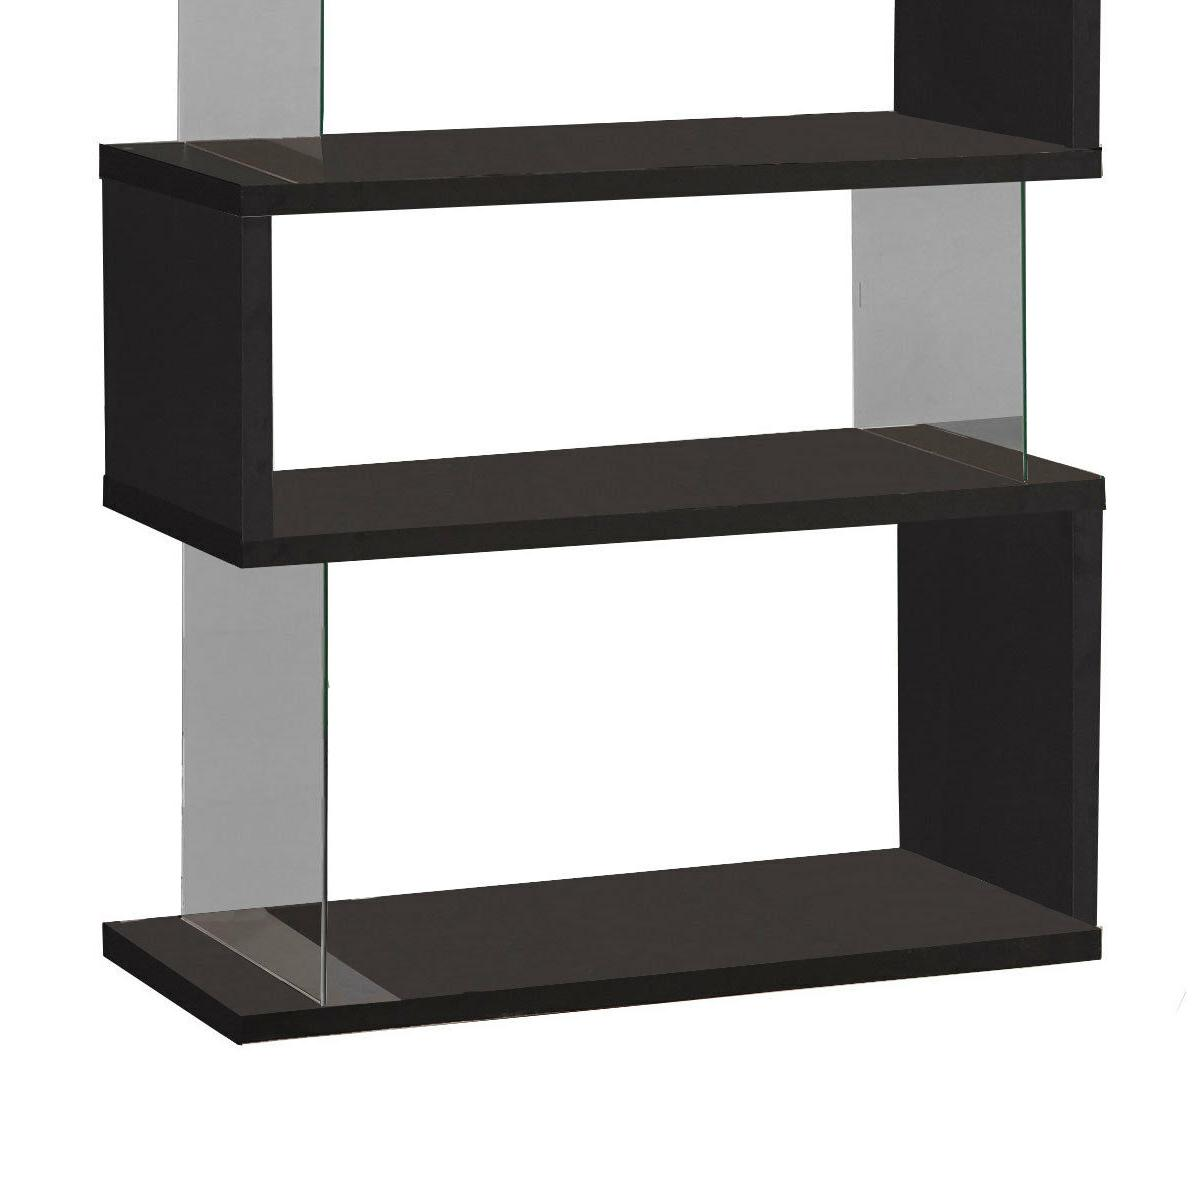 Black Wood Glass Bookcase Living Room